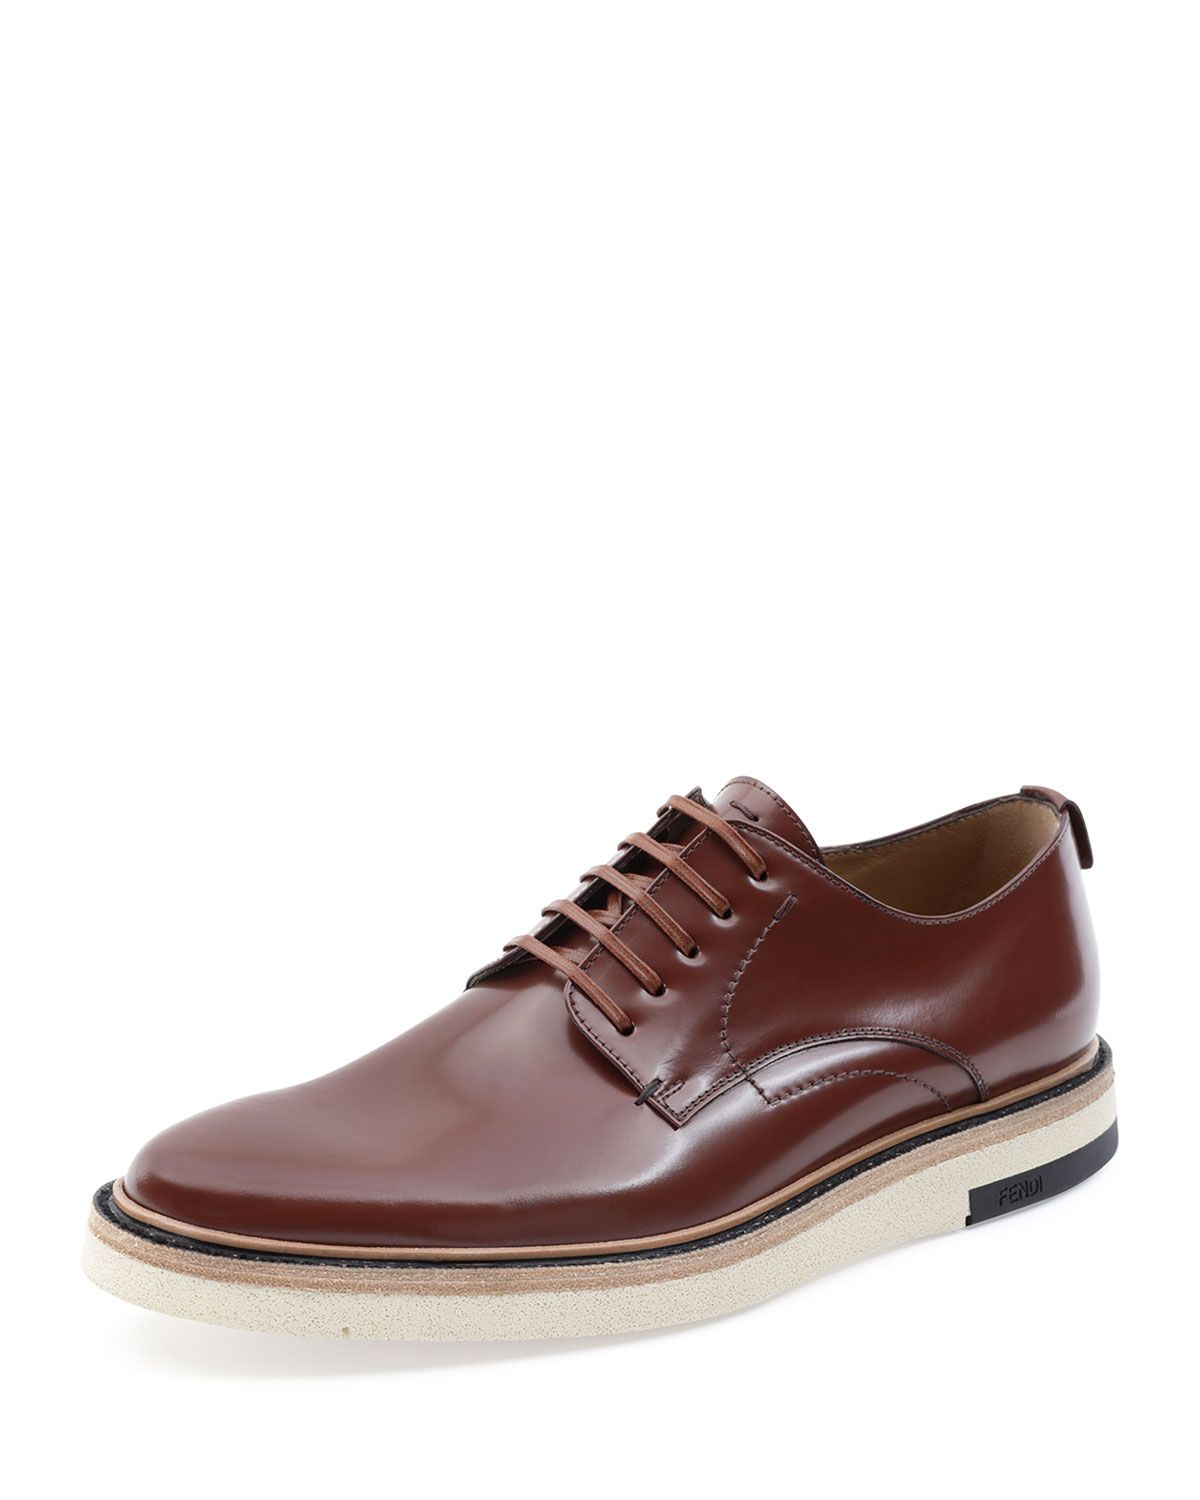 Fendi Hunting Lace-Up Shoe, Brown